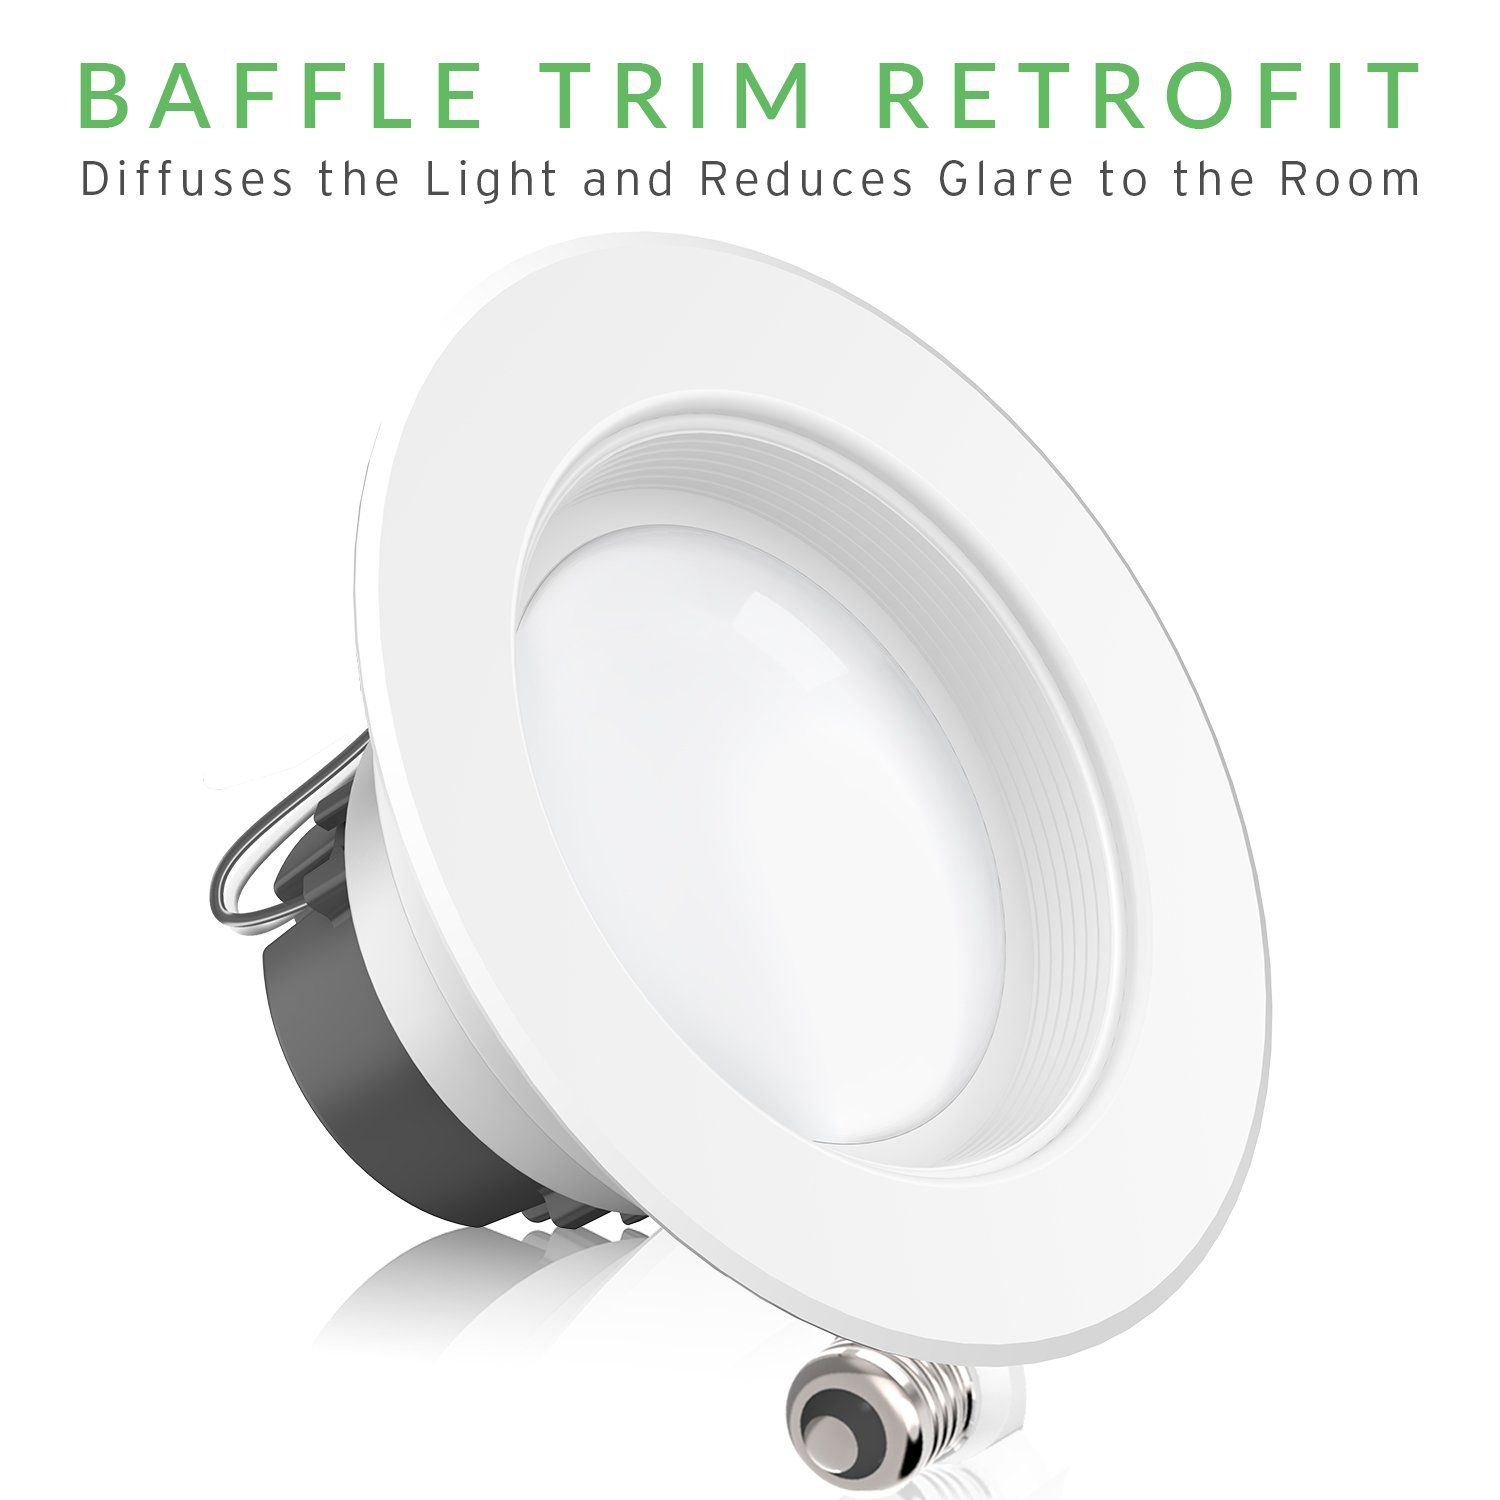 Sunco Lighting 6 Pack 4 Inch Baffle Recessed Retrofit Kit Dimmable LED Light, 11W (40W Replacement), 3000K Kelvin Warm White, Quick/Easy Can Install, 660 Lumen, Wet Rated by Sunco Lighting (Image #6)